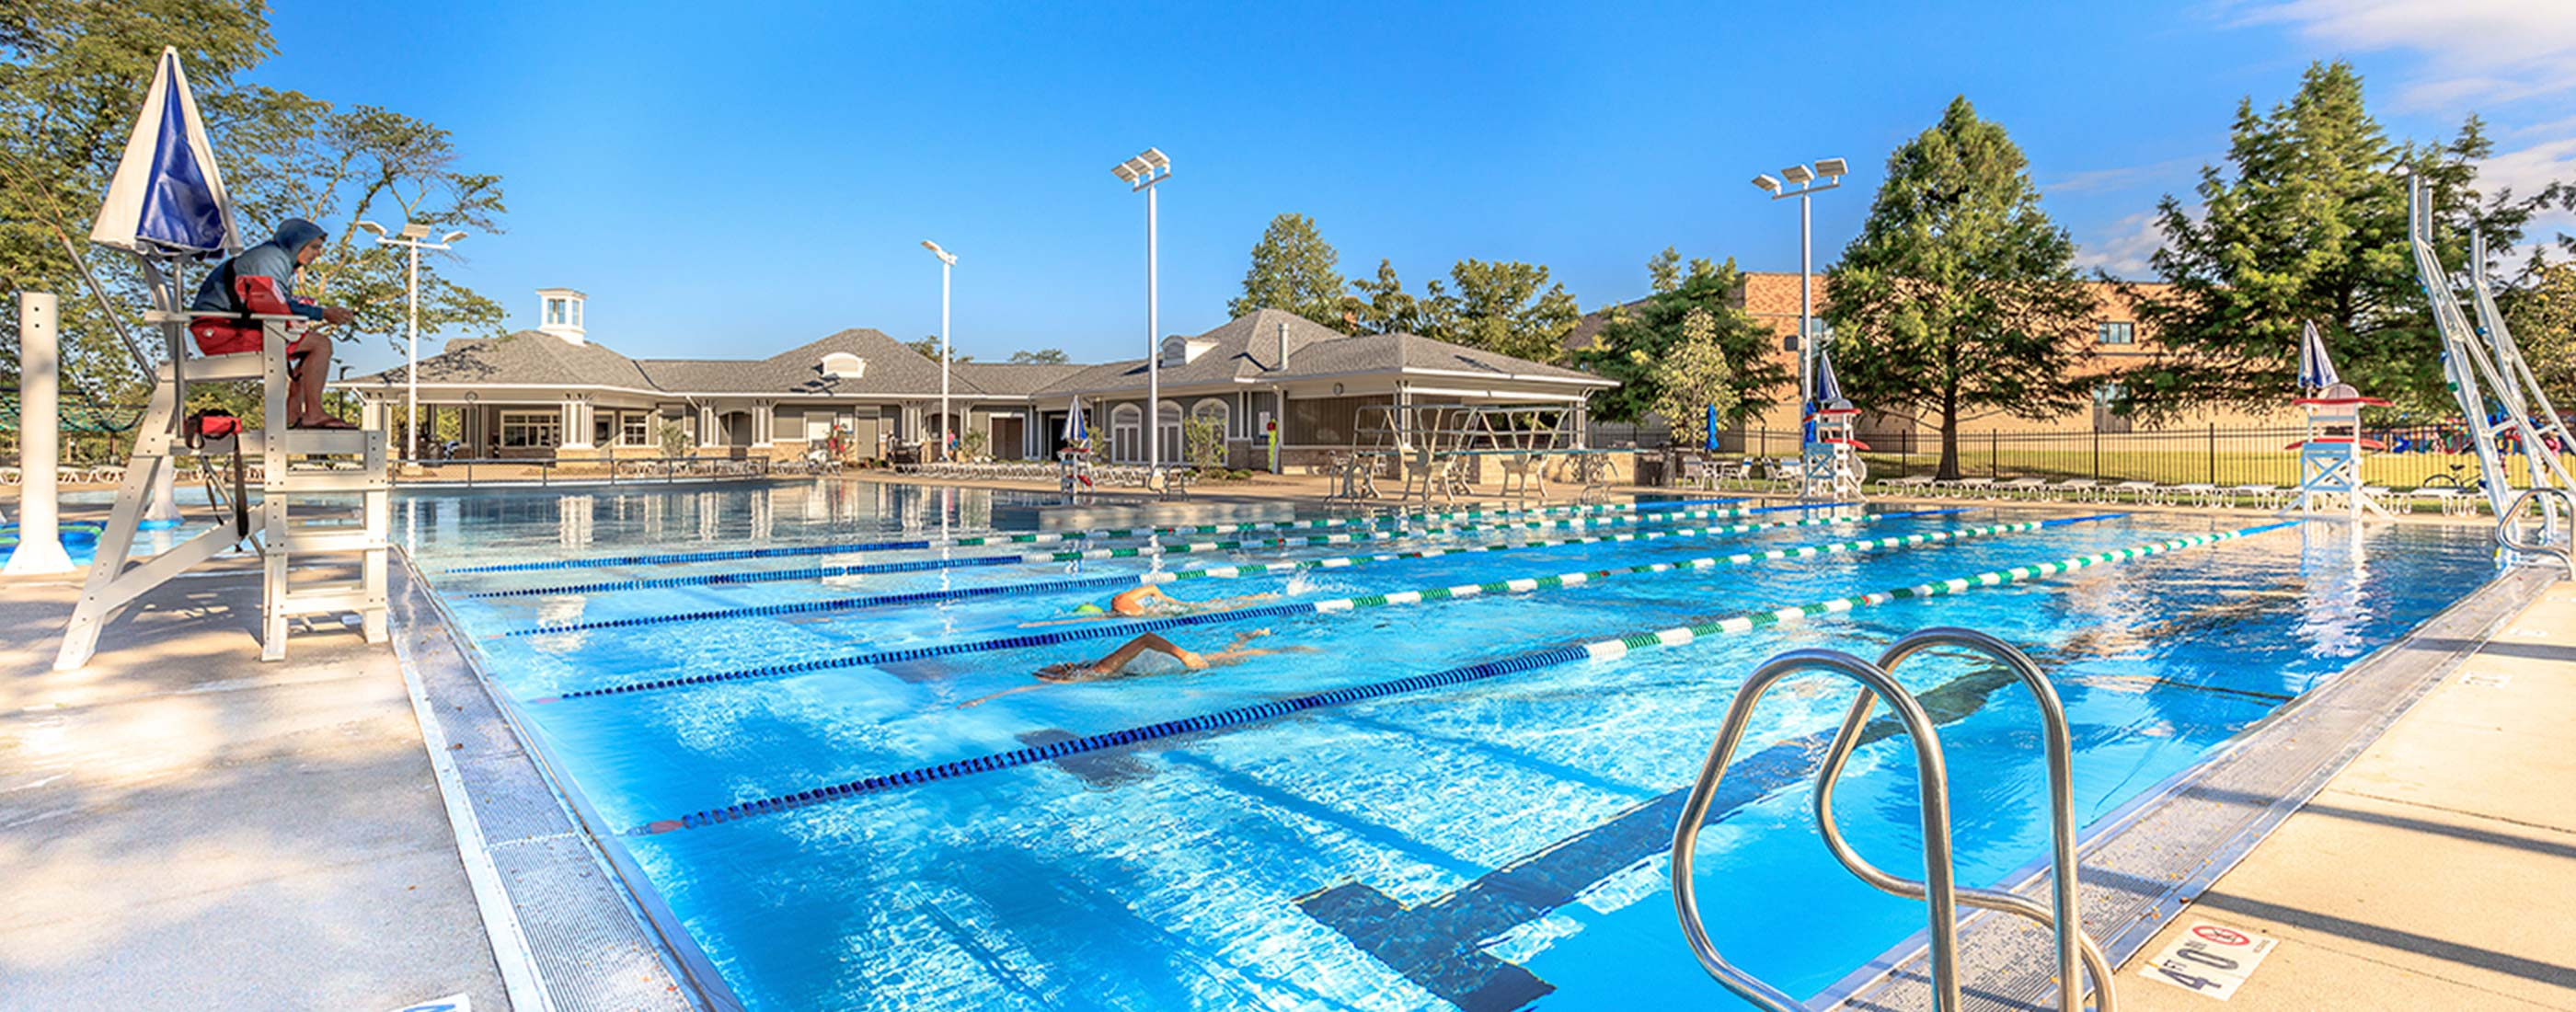 OHM Advisors helped update one of Northam Park's popular public pool.